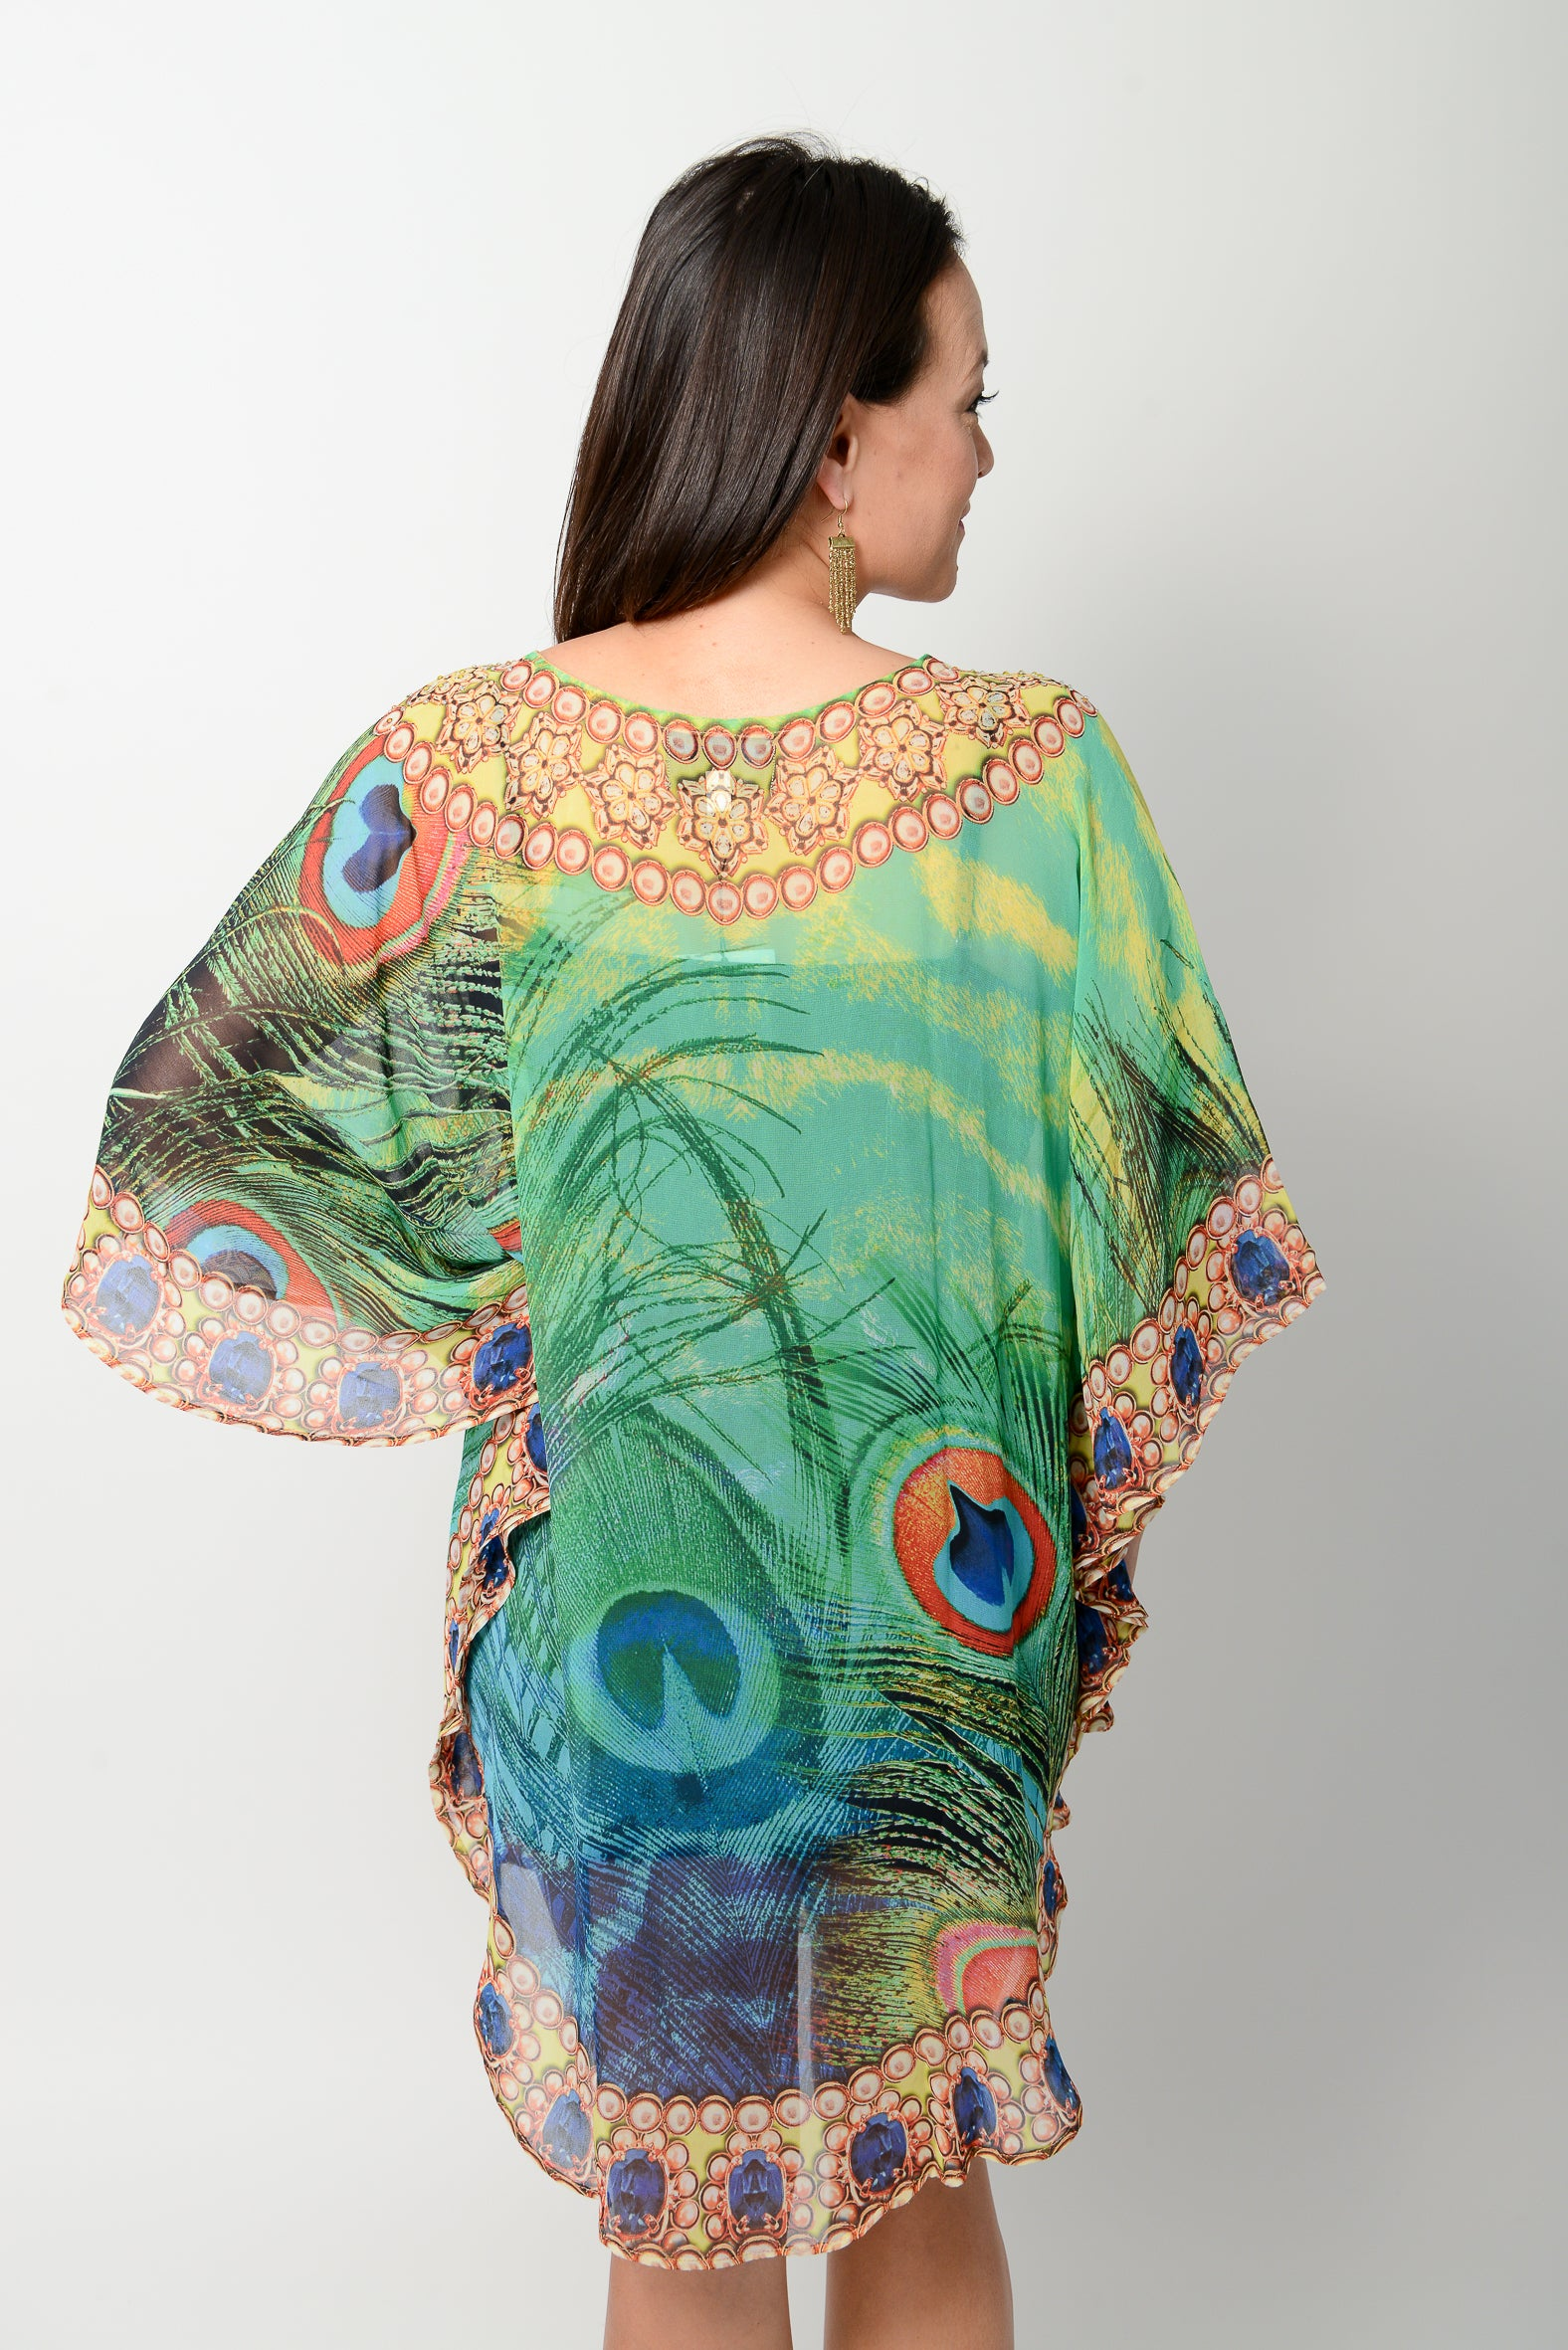 Emerald Peacock Balloon Kaftan * Limited Stock * - GlamTanz Kaftans & Resortwear Sydney Australia